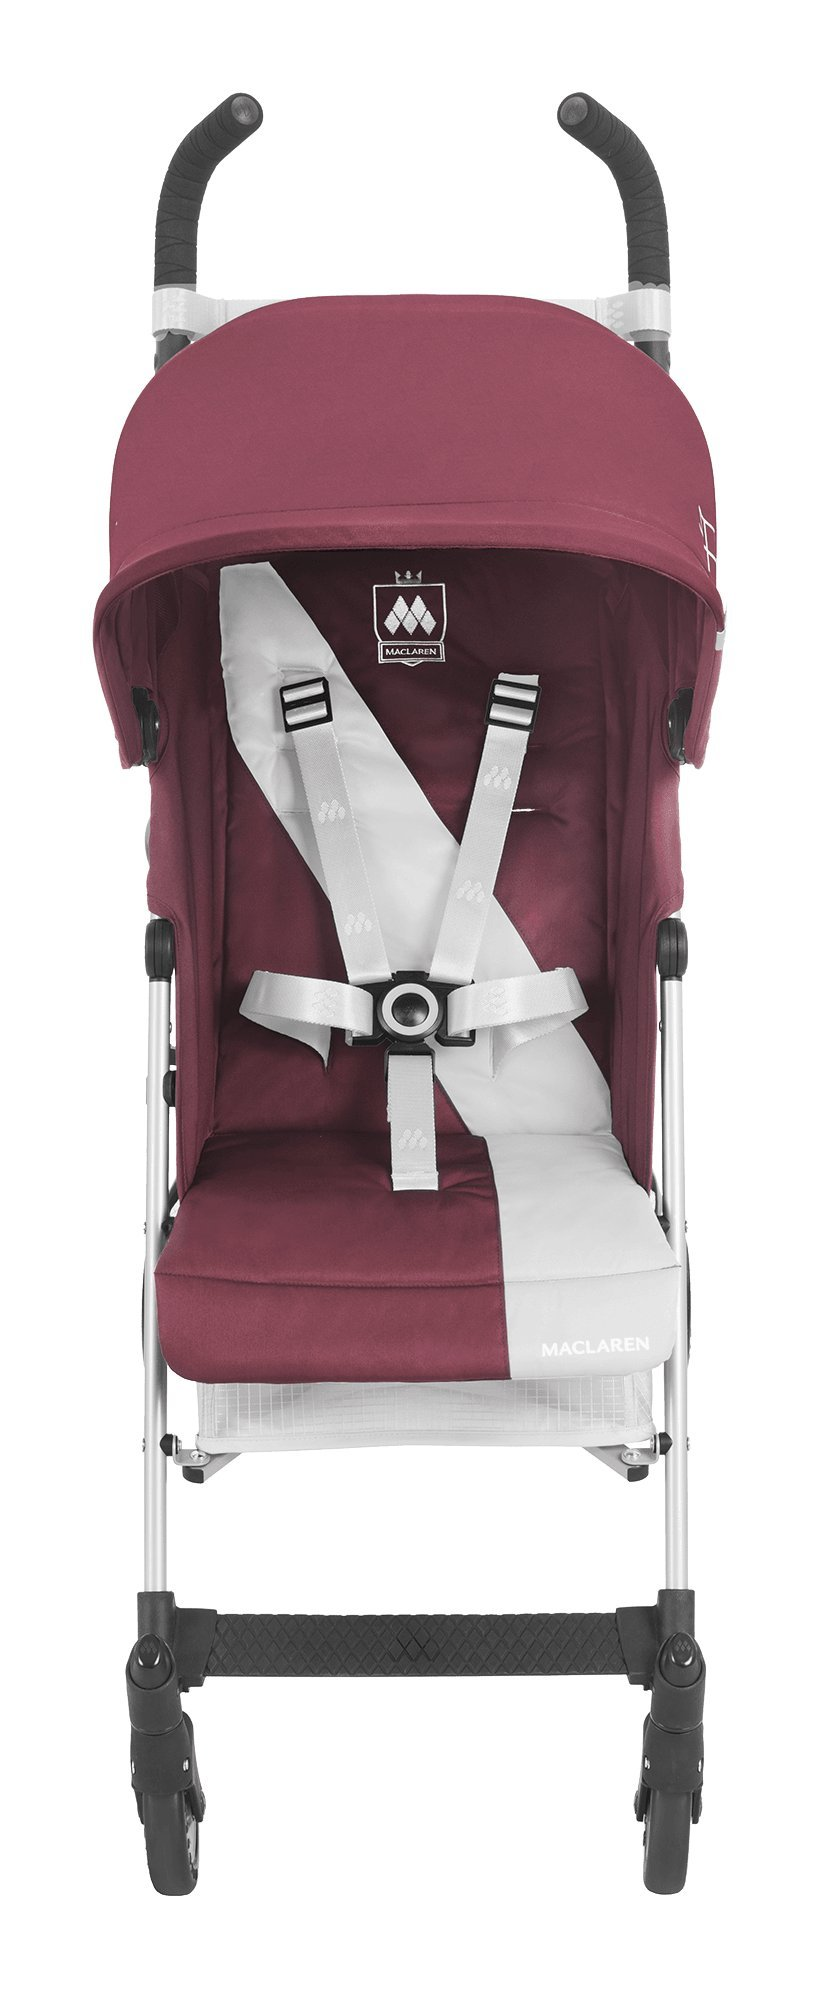 Maclaren Triumph Stroller - lightweight, compact Maclaren Basic weight of 5kg/ 11lb; ideal for children 6 months and up to 25kg/55lb Maclaren is the only brand to offer a sovereign lifetime warranty Extendable upf 50+ sun canopy and built-in sun visor 5